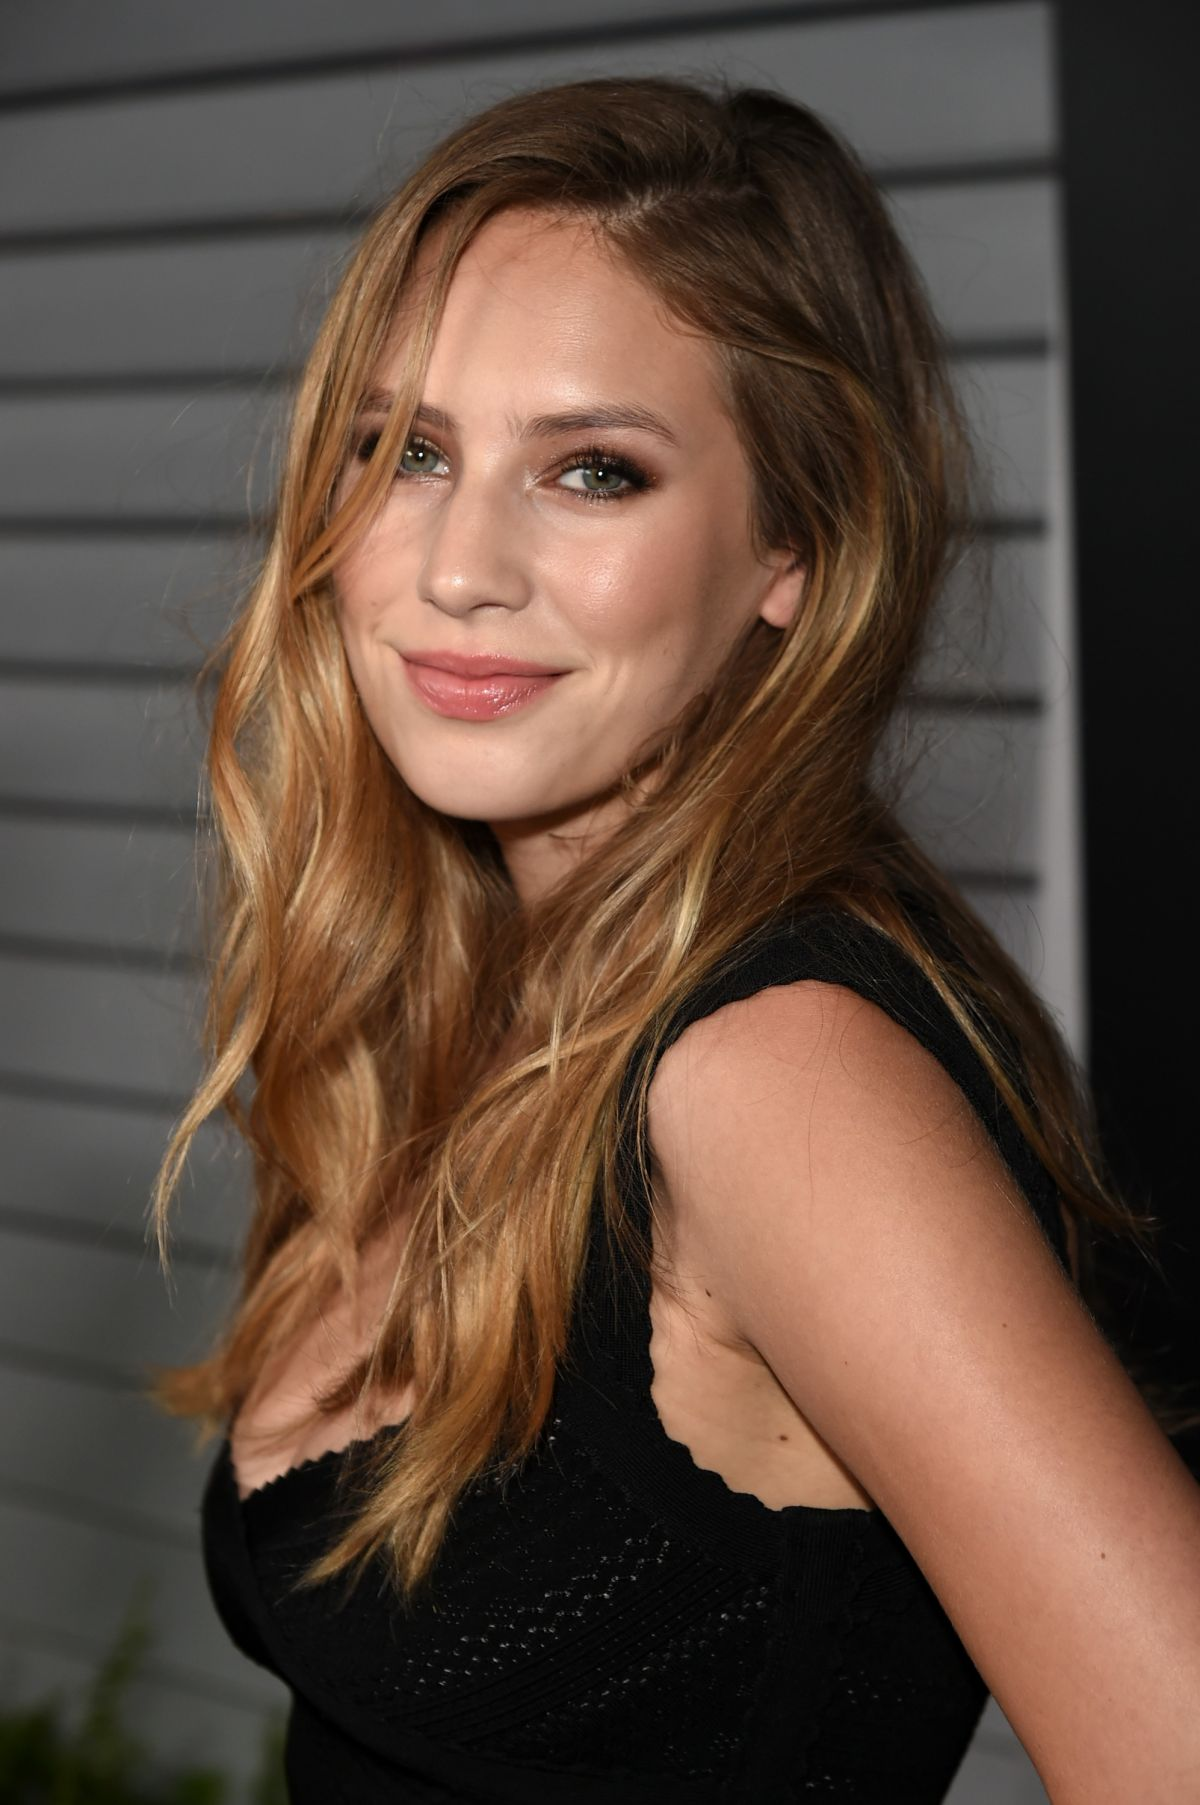 Hottest Woman 11 12 16 Maiara Walsh Notorious: Dylan Penn At Maxim's Hot 100 Women Of 2014 Celebration